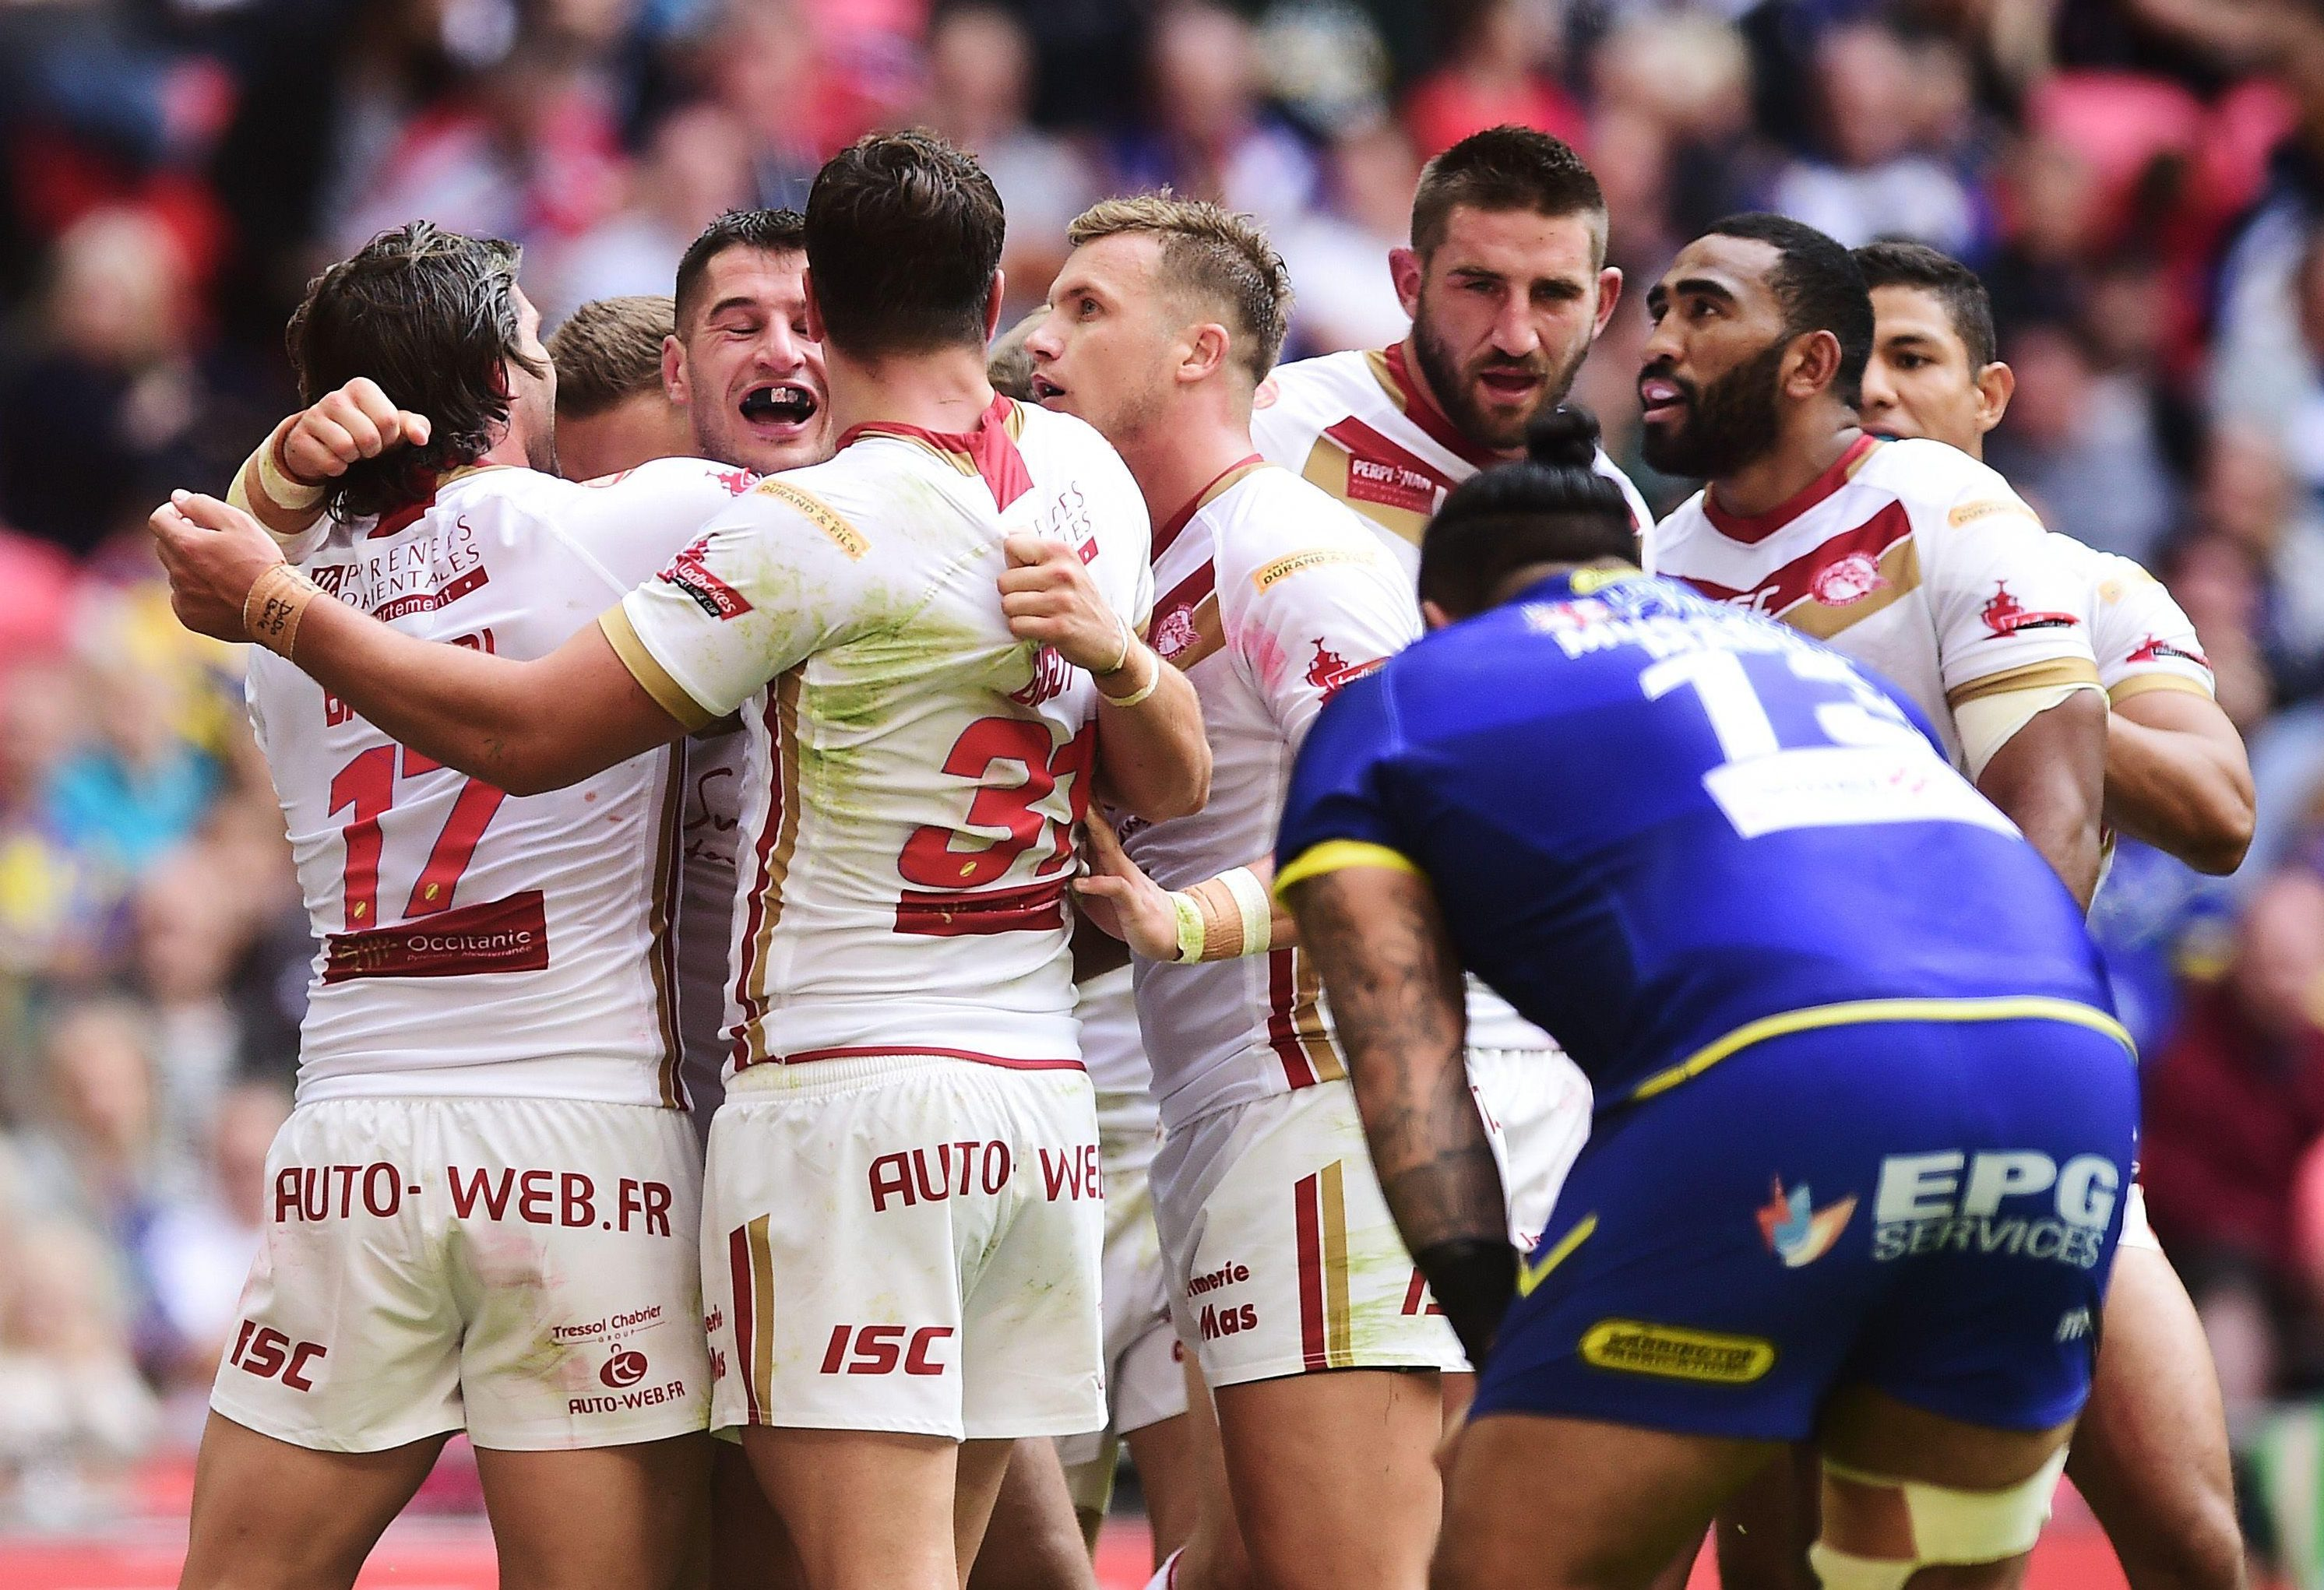 The French side were not seen as favourites against Warrington